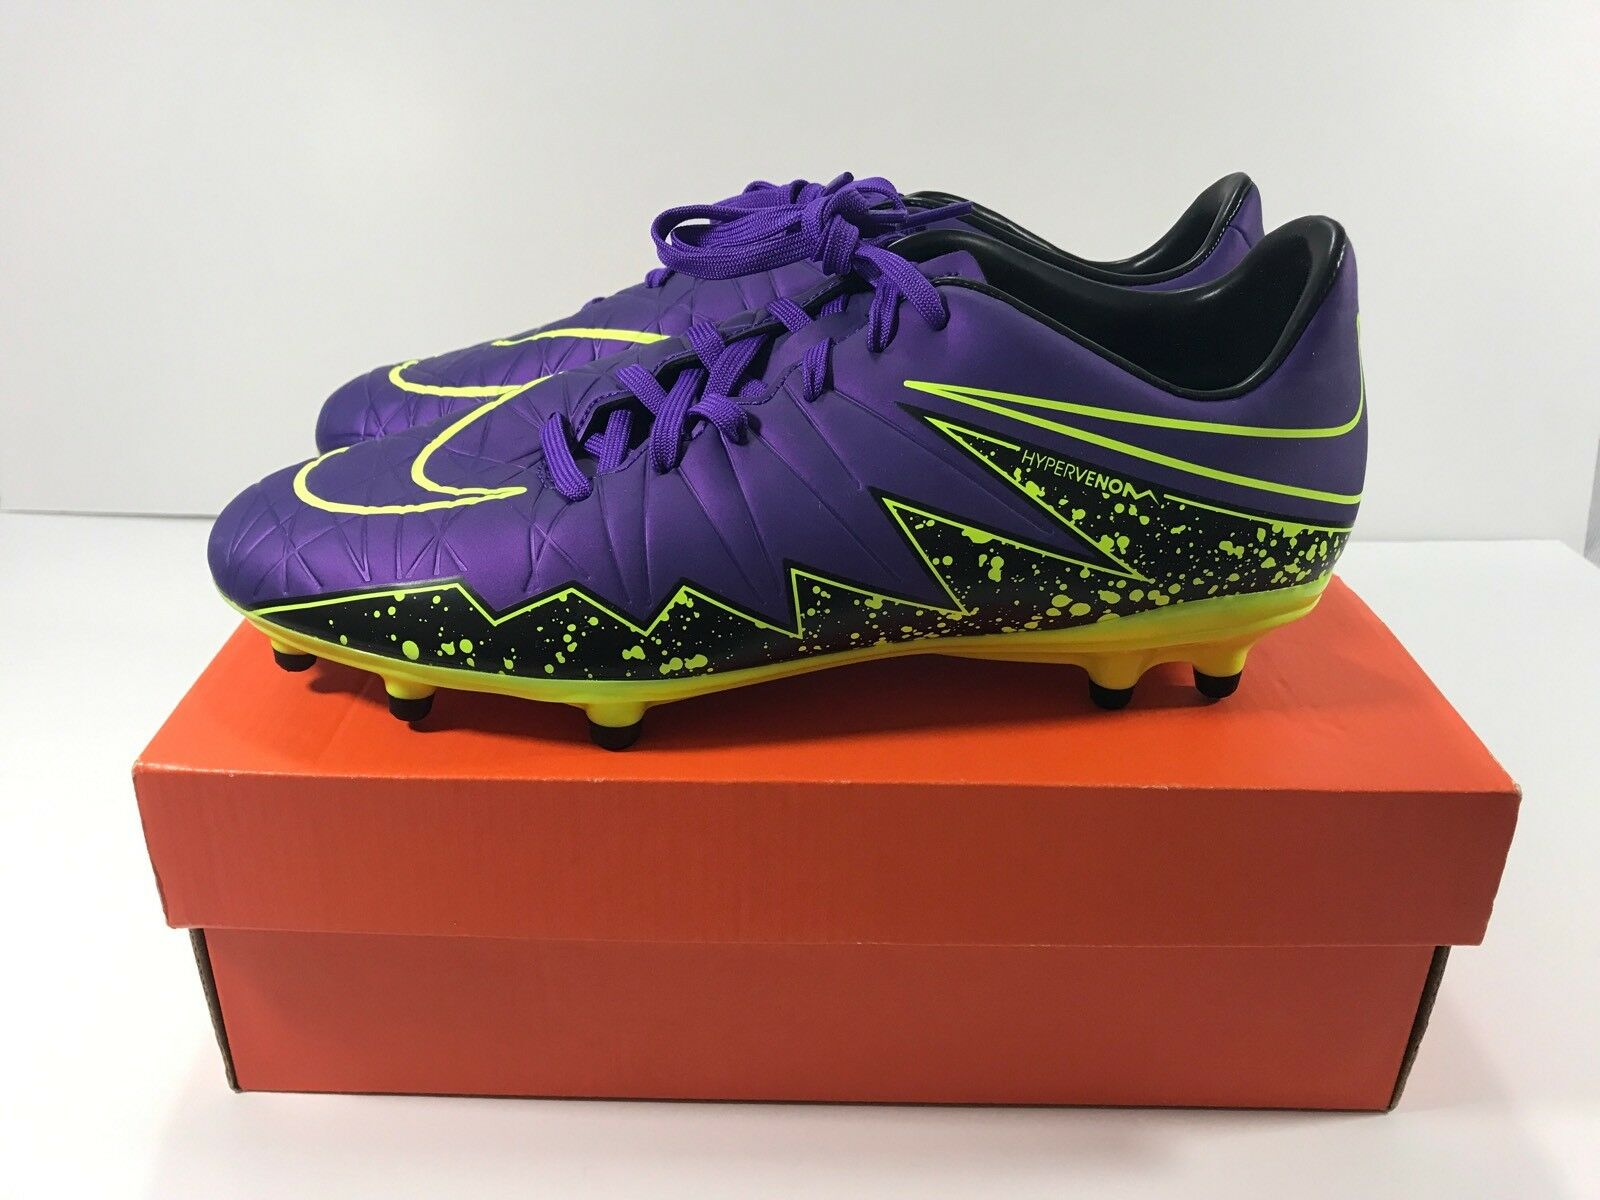 NIKE HYPERVENOM PHELON II FG HYPER GRAPE VOLT Soccer Cleats 749896-550 Comfortable New shoes for men and women, limited time discount